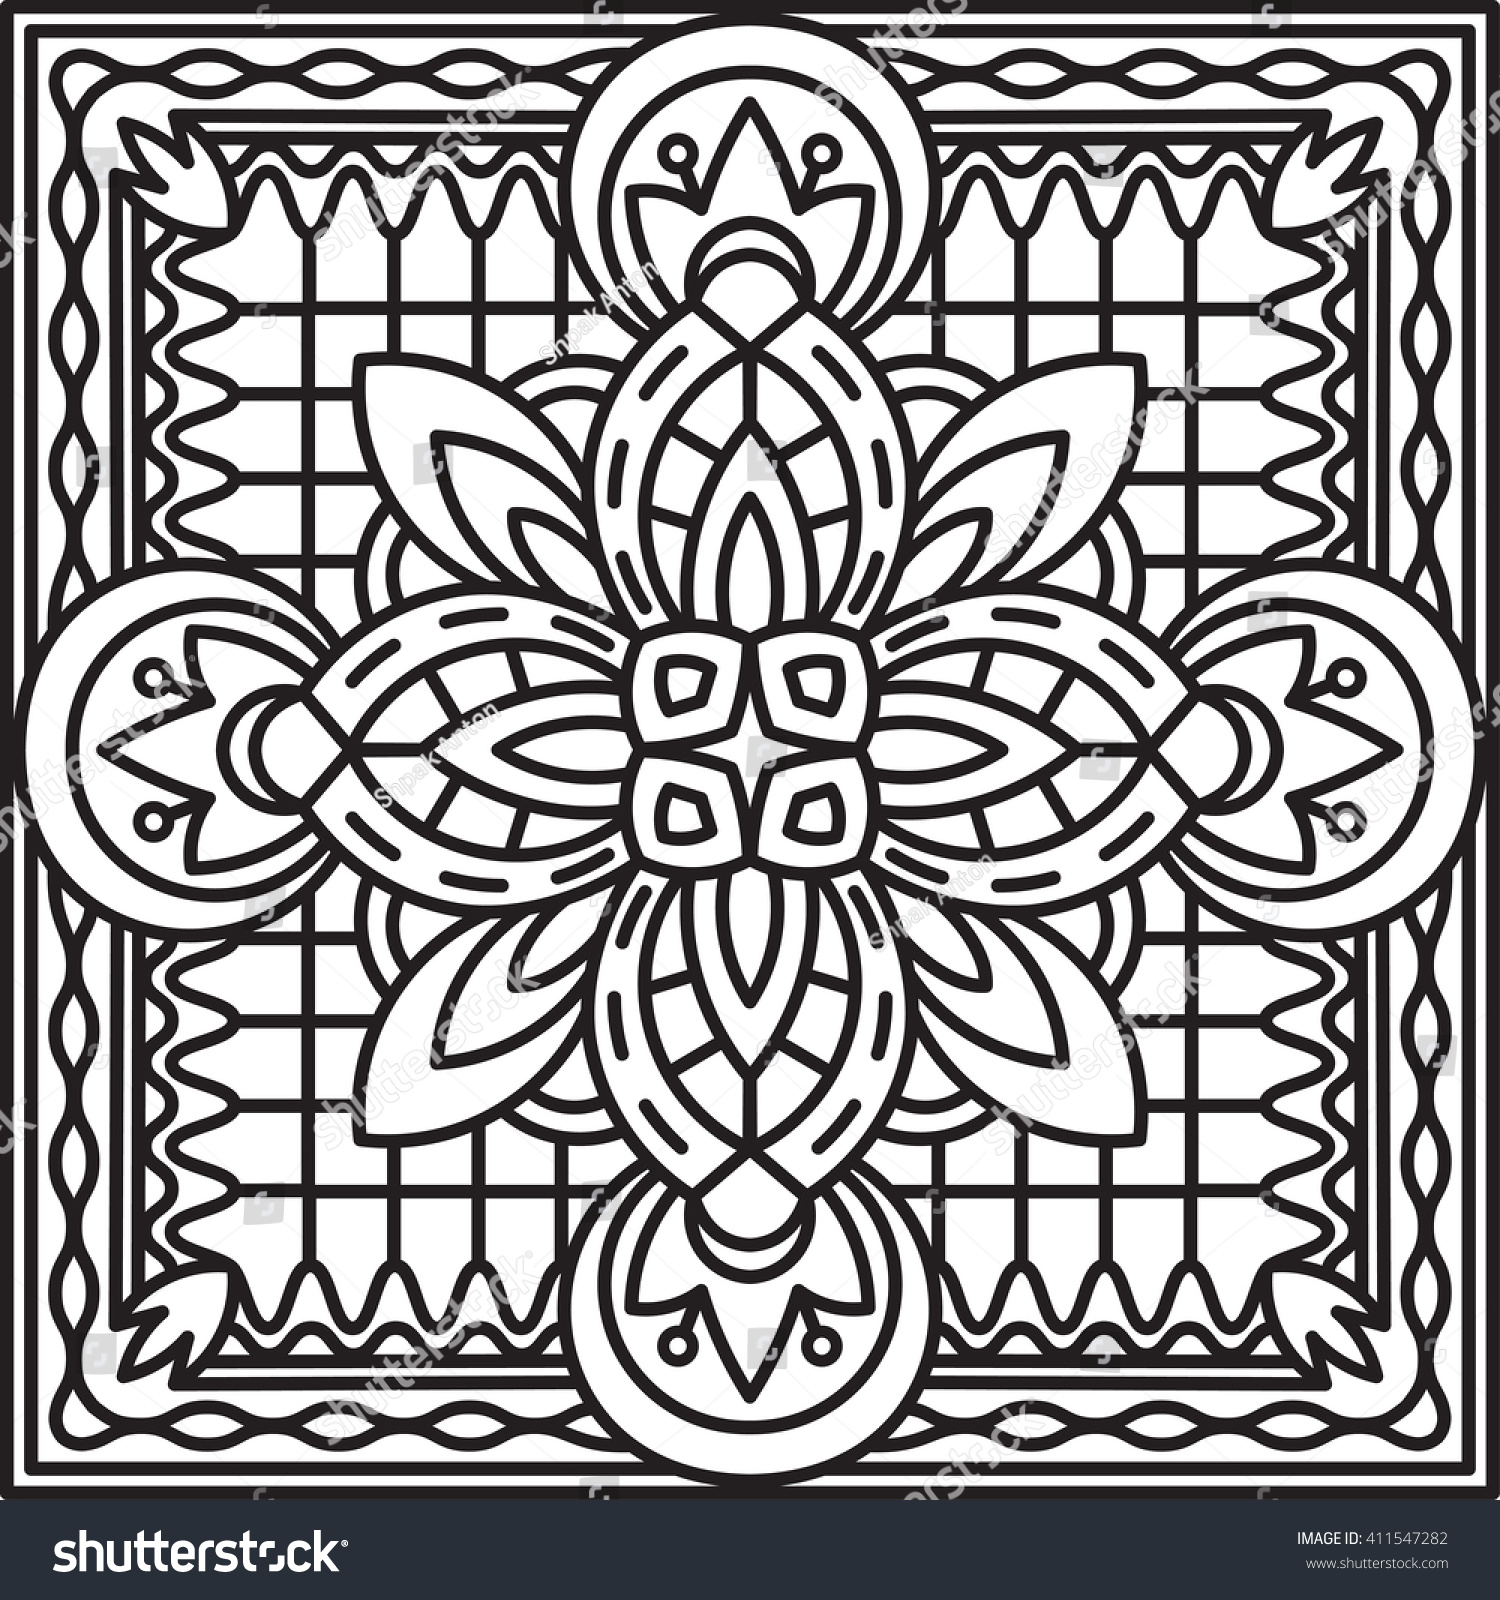 Transom Windows A Useful Design Element: Abstract Vector Black Square Lace Design Stock Vector